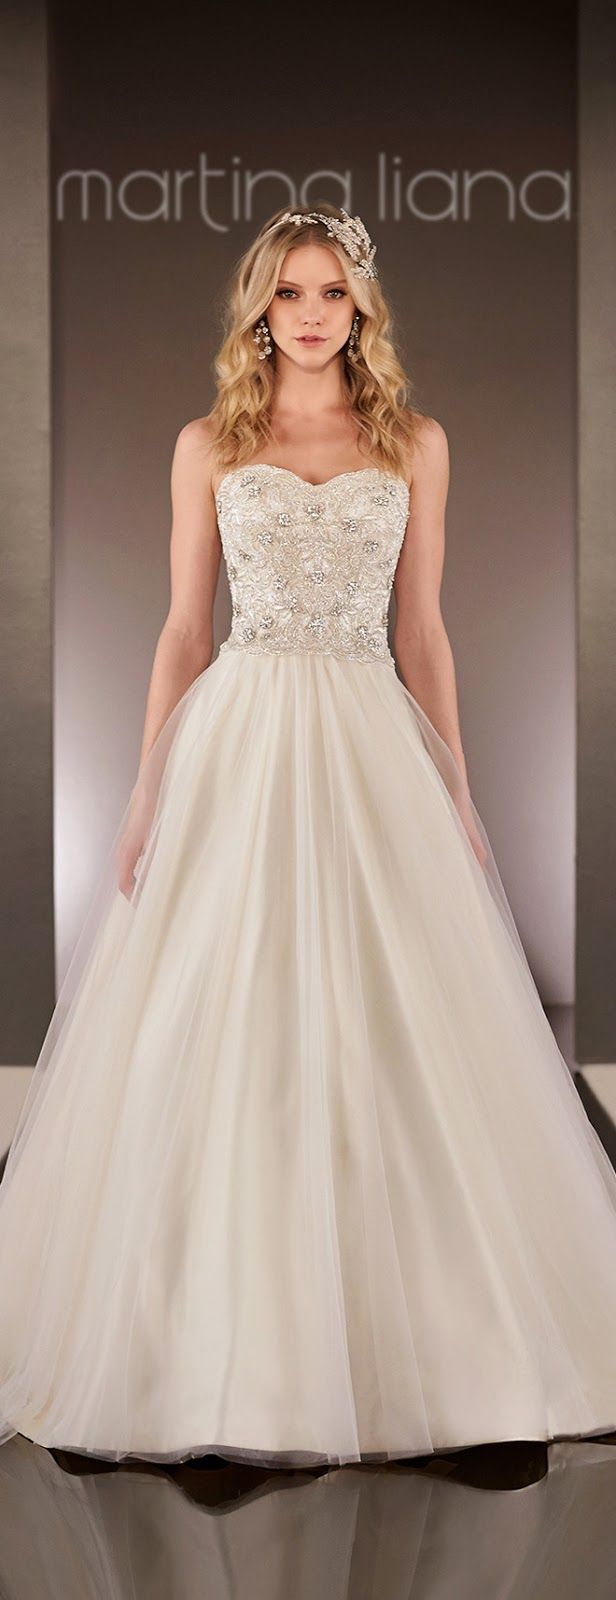 104 best wedding dresses images on pinterest wedding dressses martina liana spring 2015 bridal collection ombrellifo Image collections